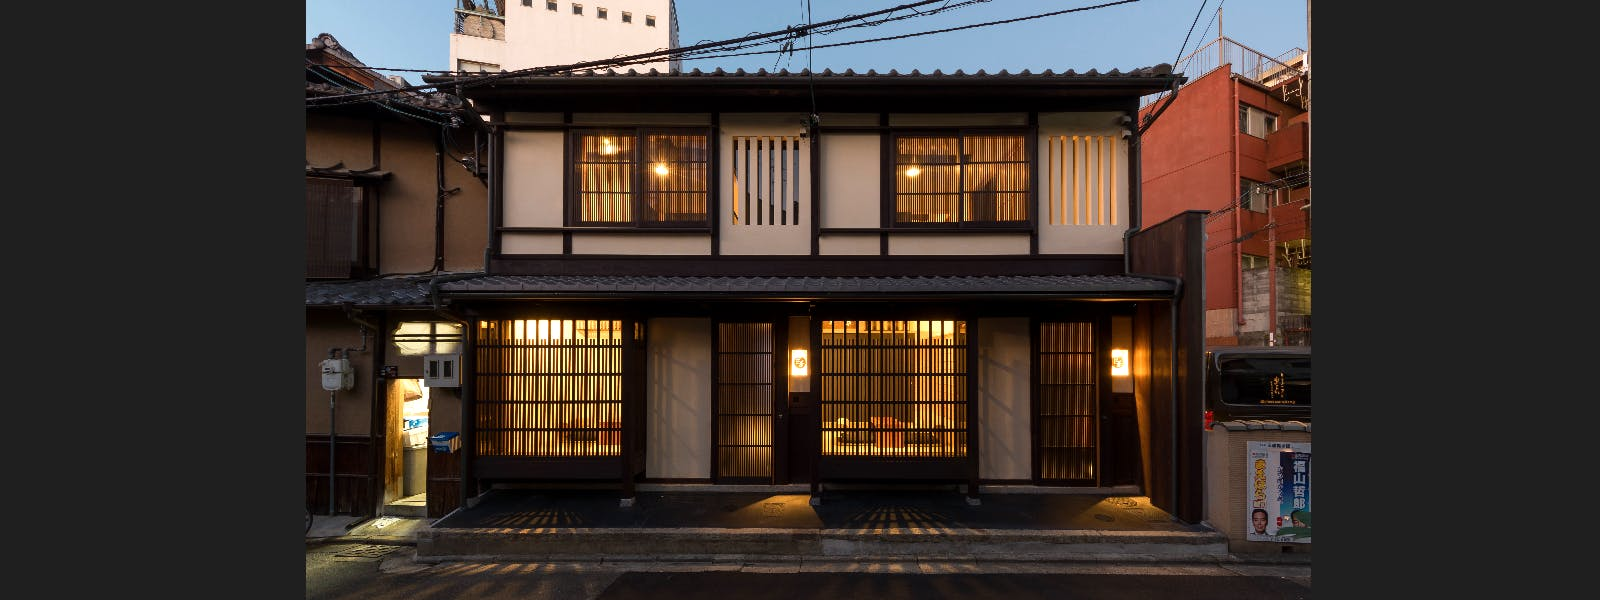 BenTen Residences at night - Kyoto Townhouses Restored by Hand